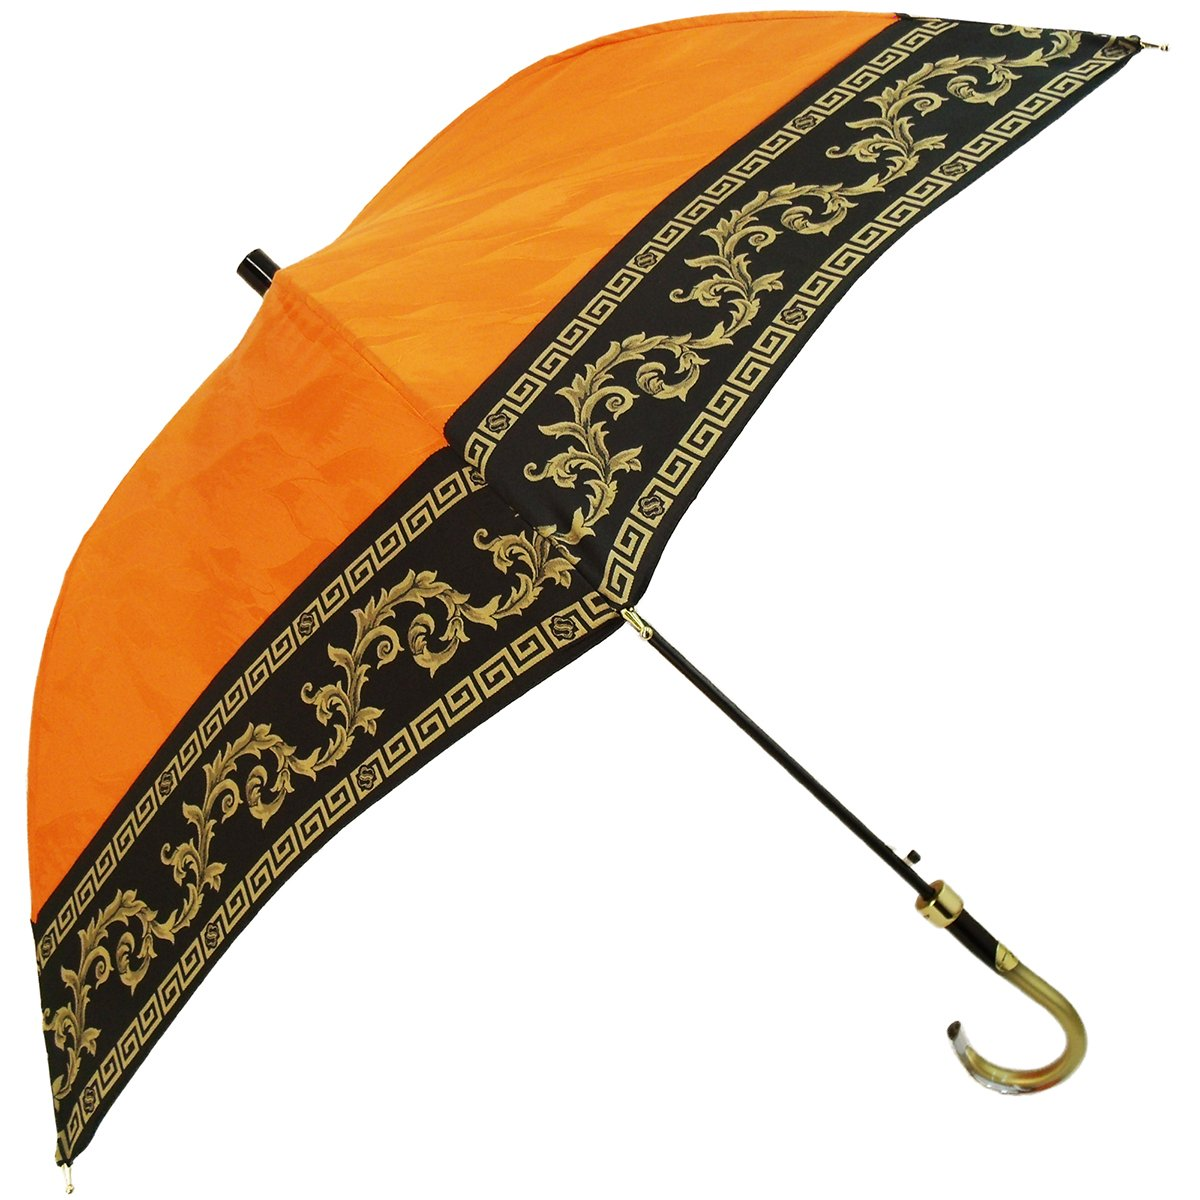 New il Marchesato Orange Umbrella - il-marchesato